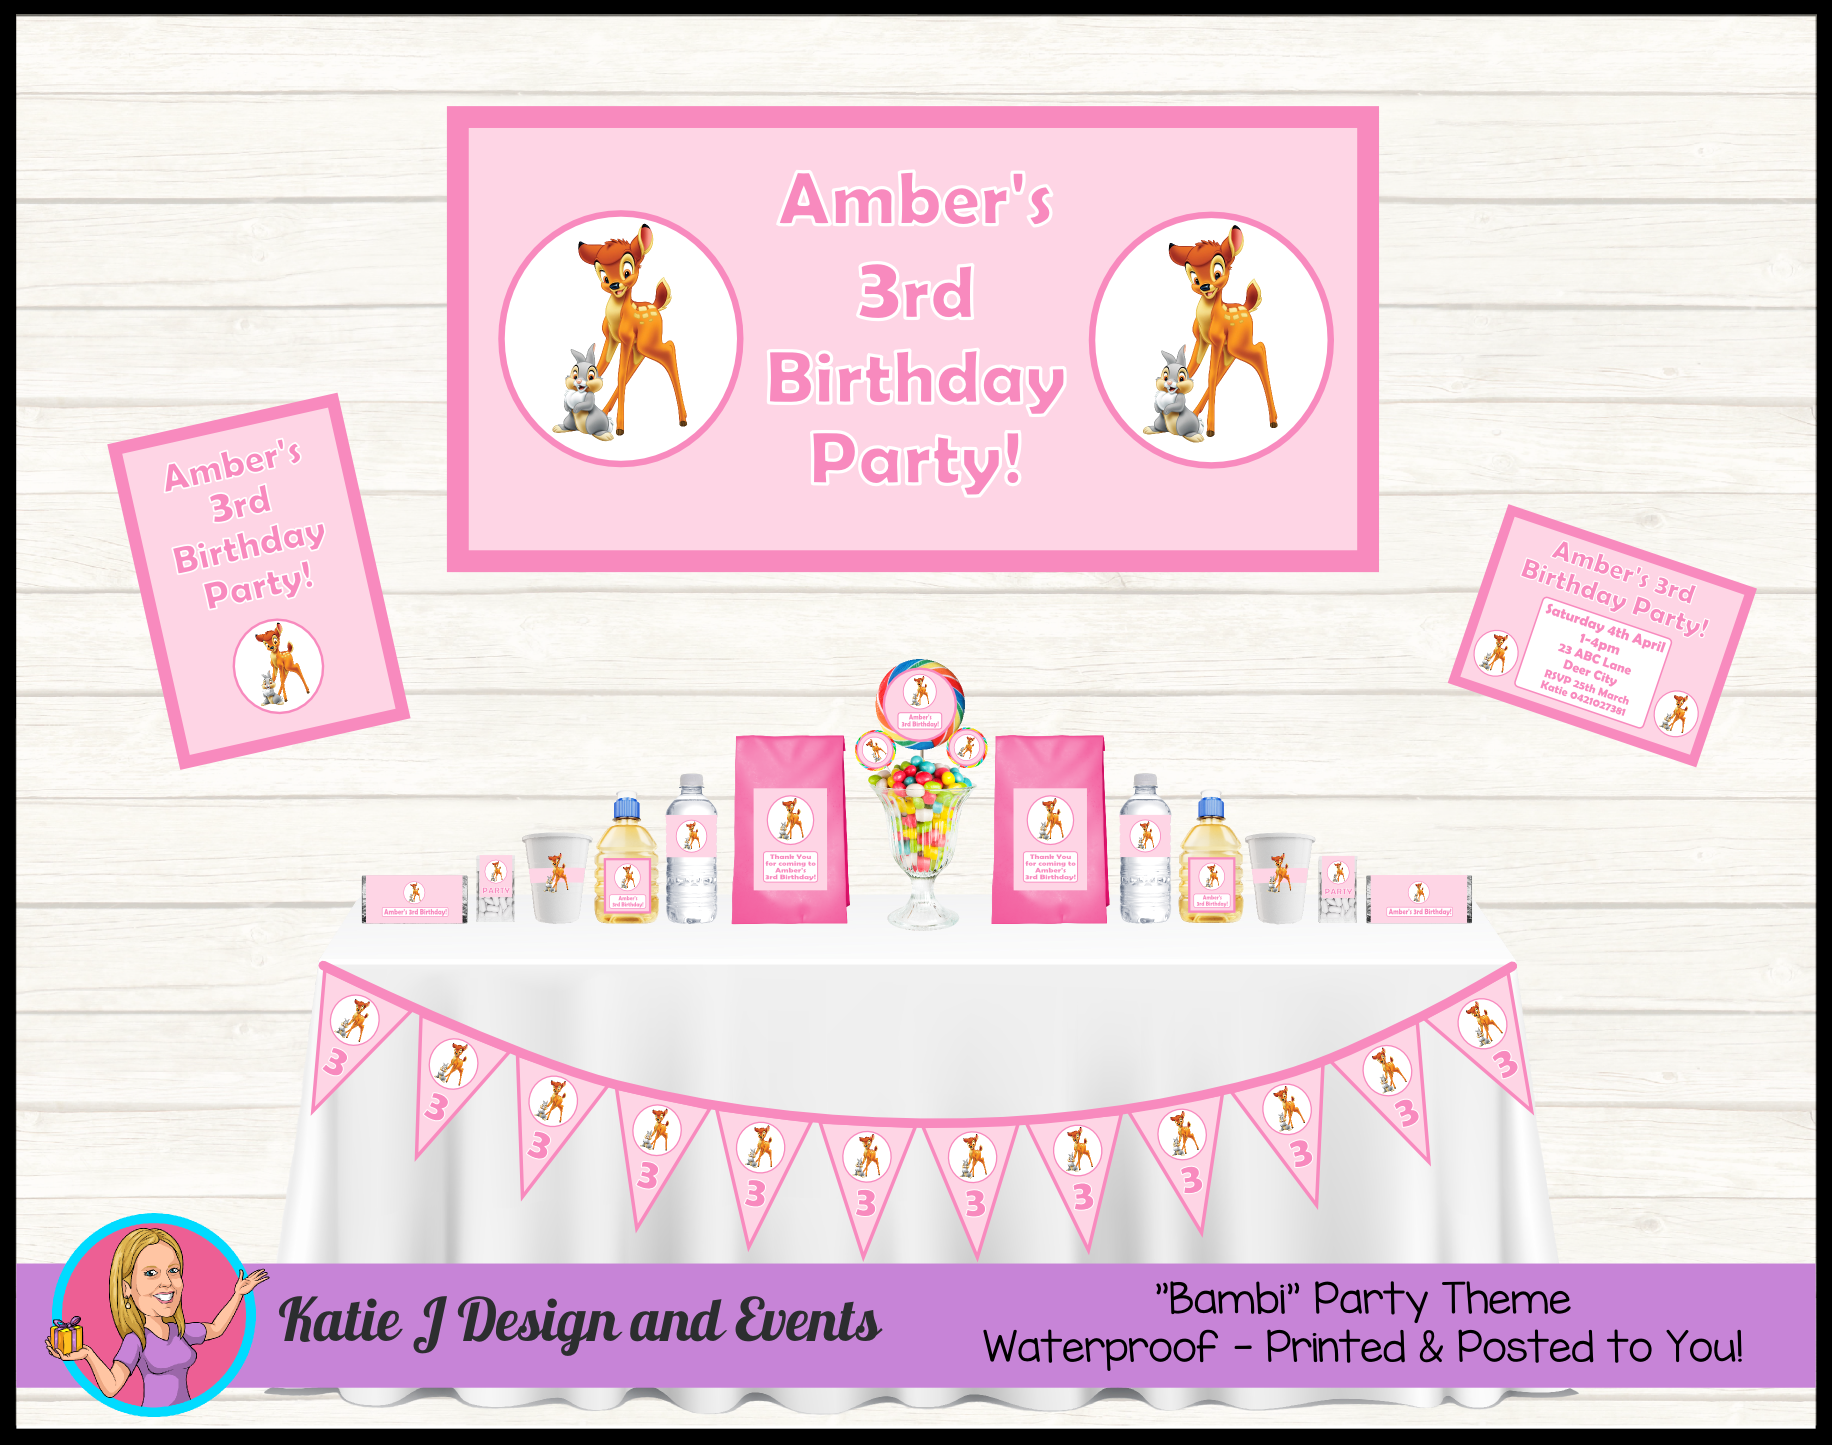 Bambi Thumper Personalised Birthday Party Decorations Supplies Packs Shop Online Australia Banners Bunting Wall Display Cupcake Toppers Chocolate Wrappers